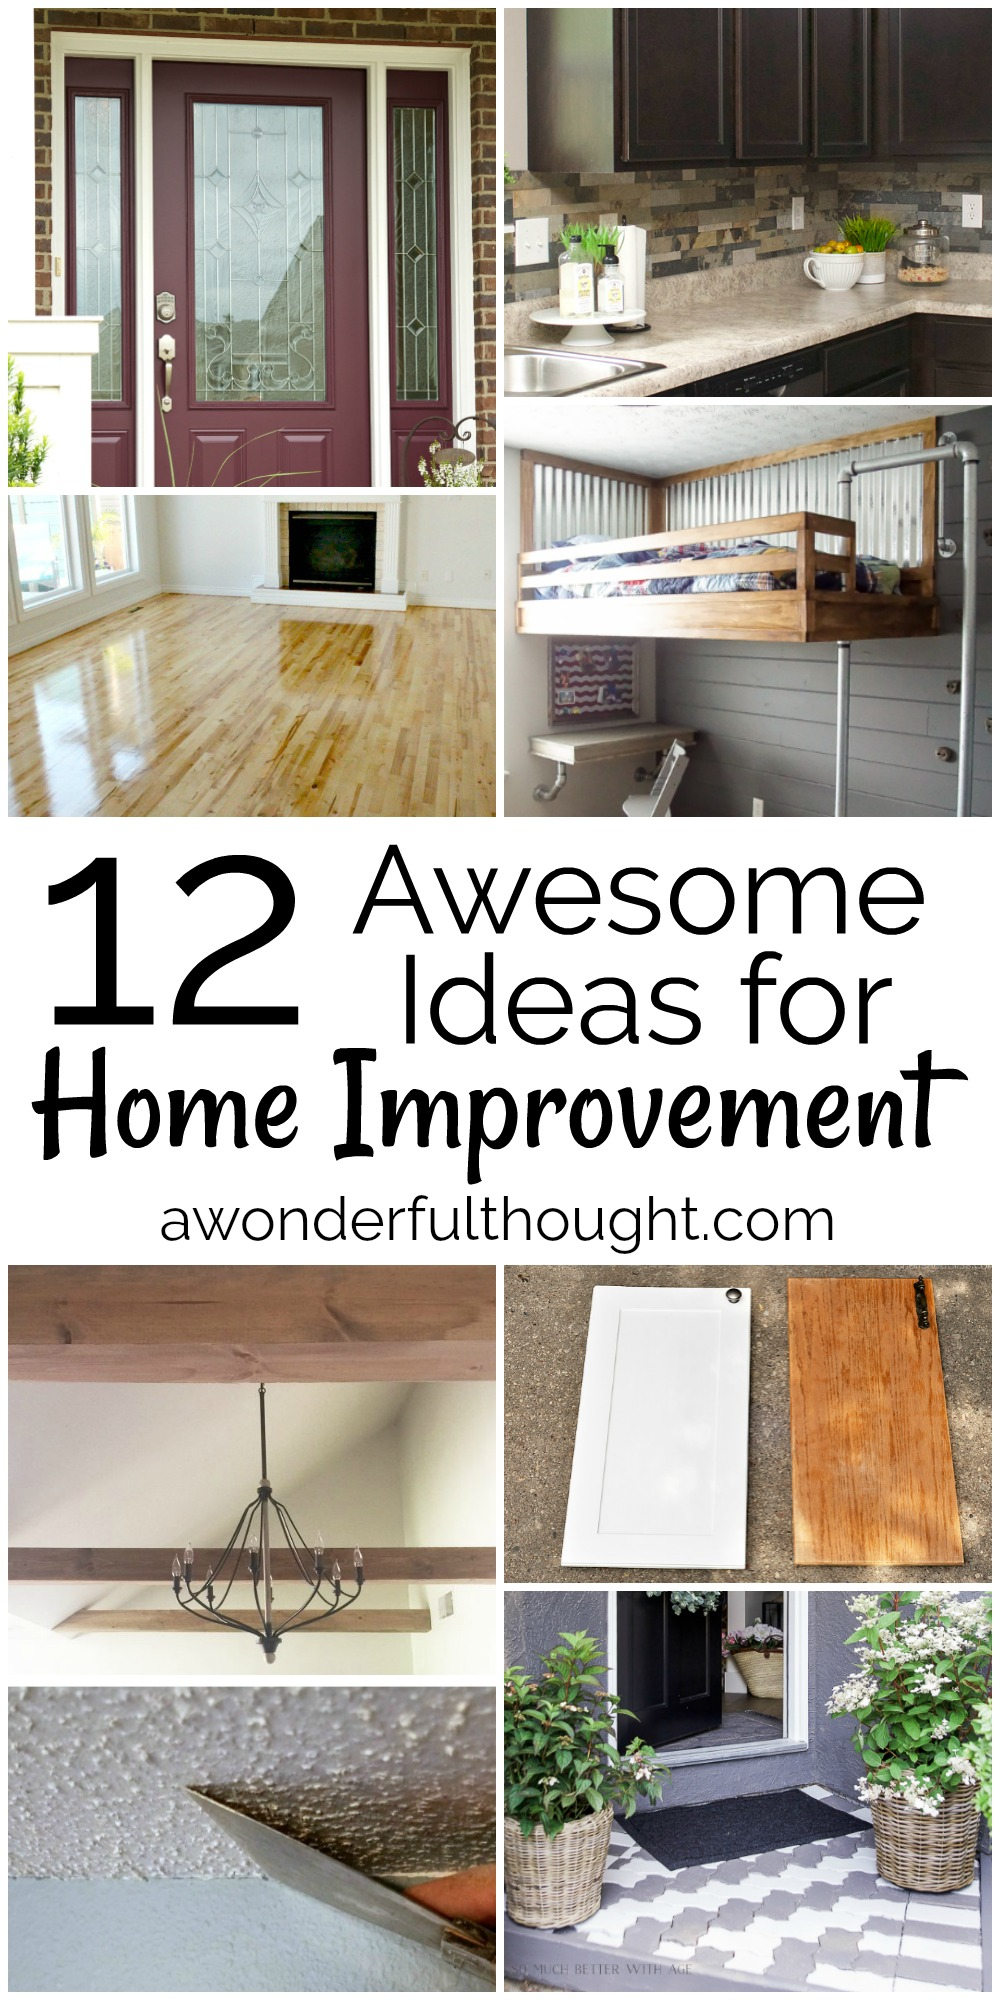 12 Awesome Home Improvement Ideas. Great DIY Projects To Upgrade Your Home  On A Budget